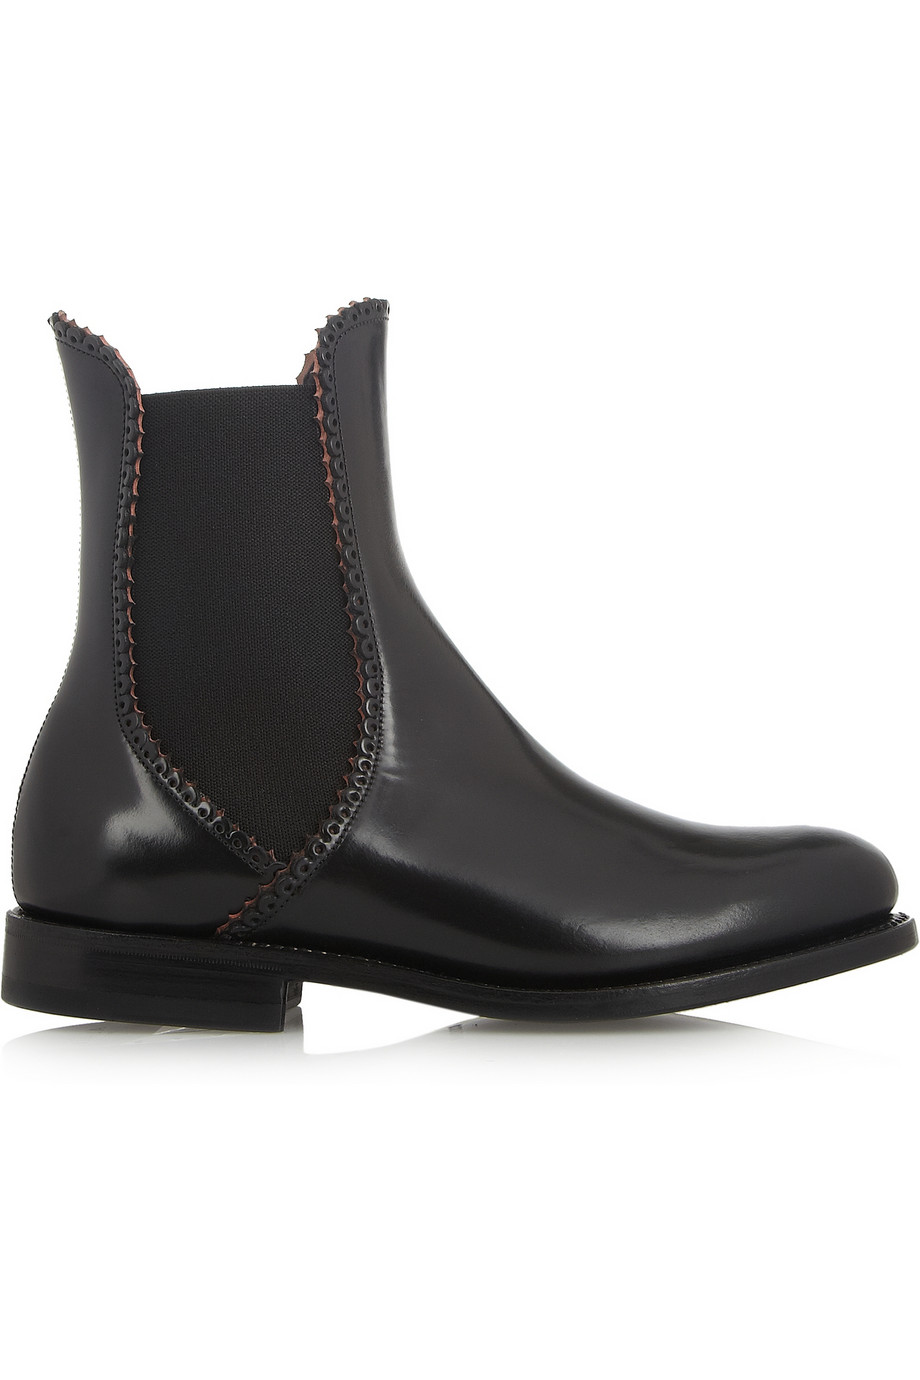 Black chelsea Leather ankle boots Alaia Clearance Best Seller Pictures Cheap Amazing Price rXTqXqqr